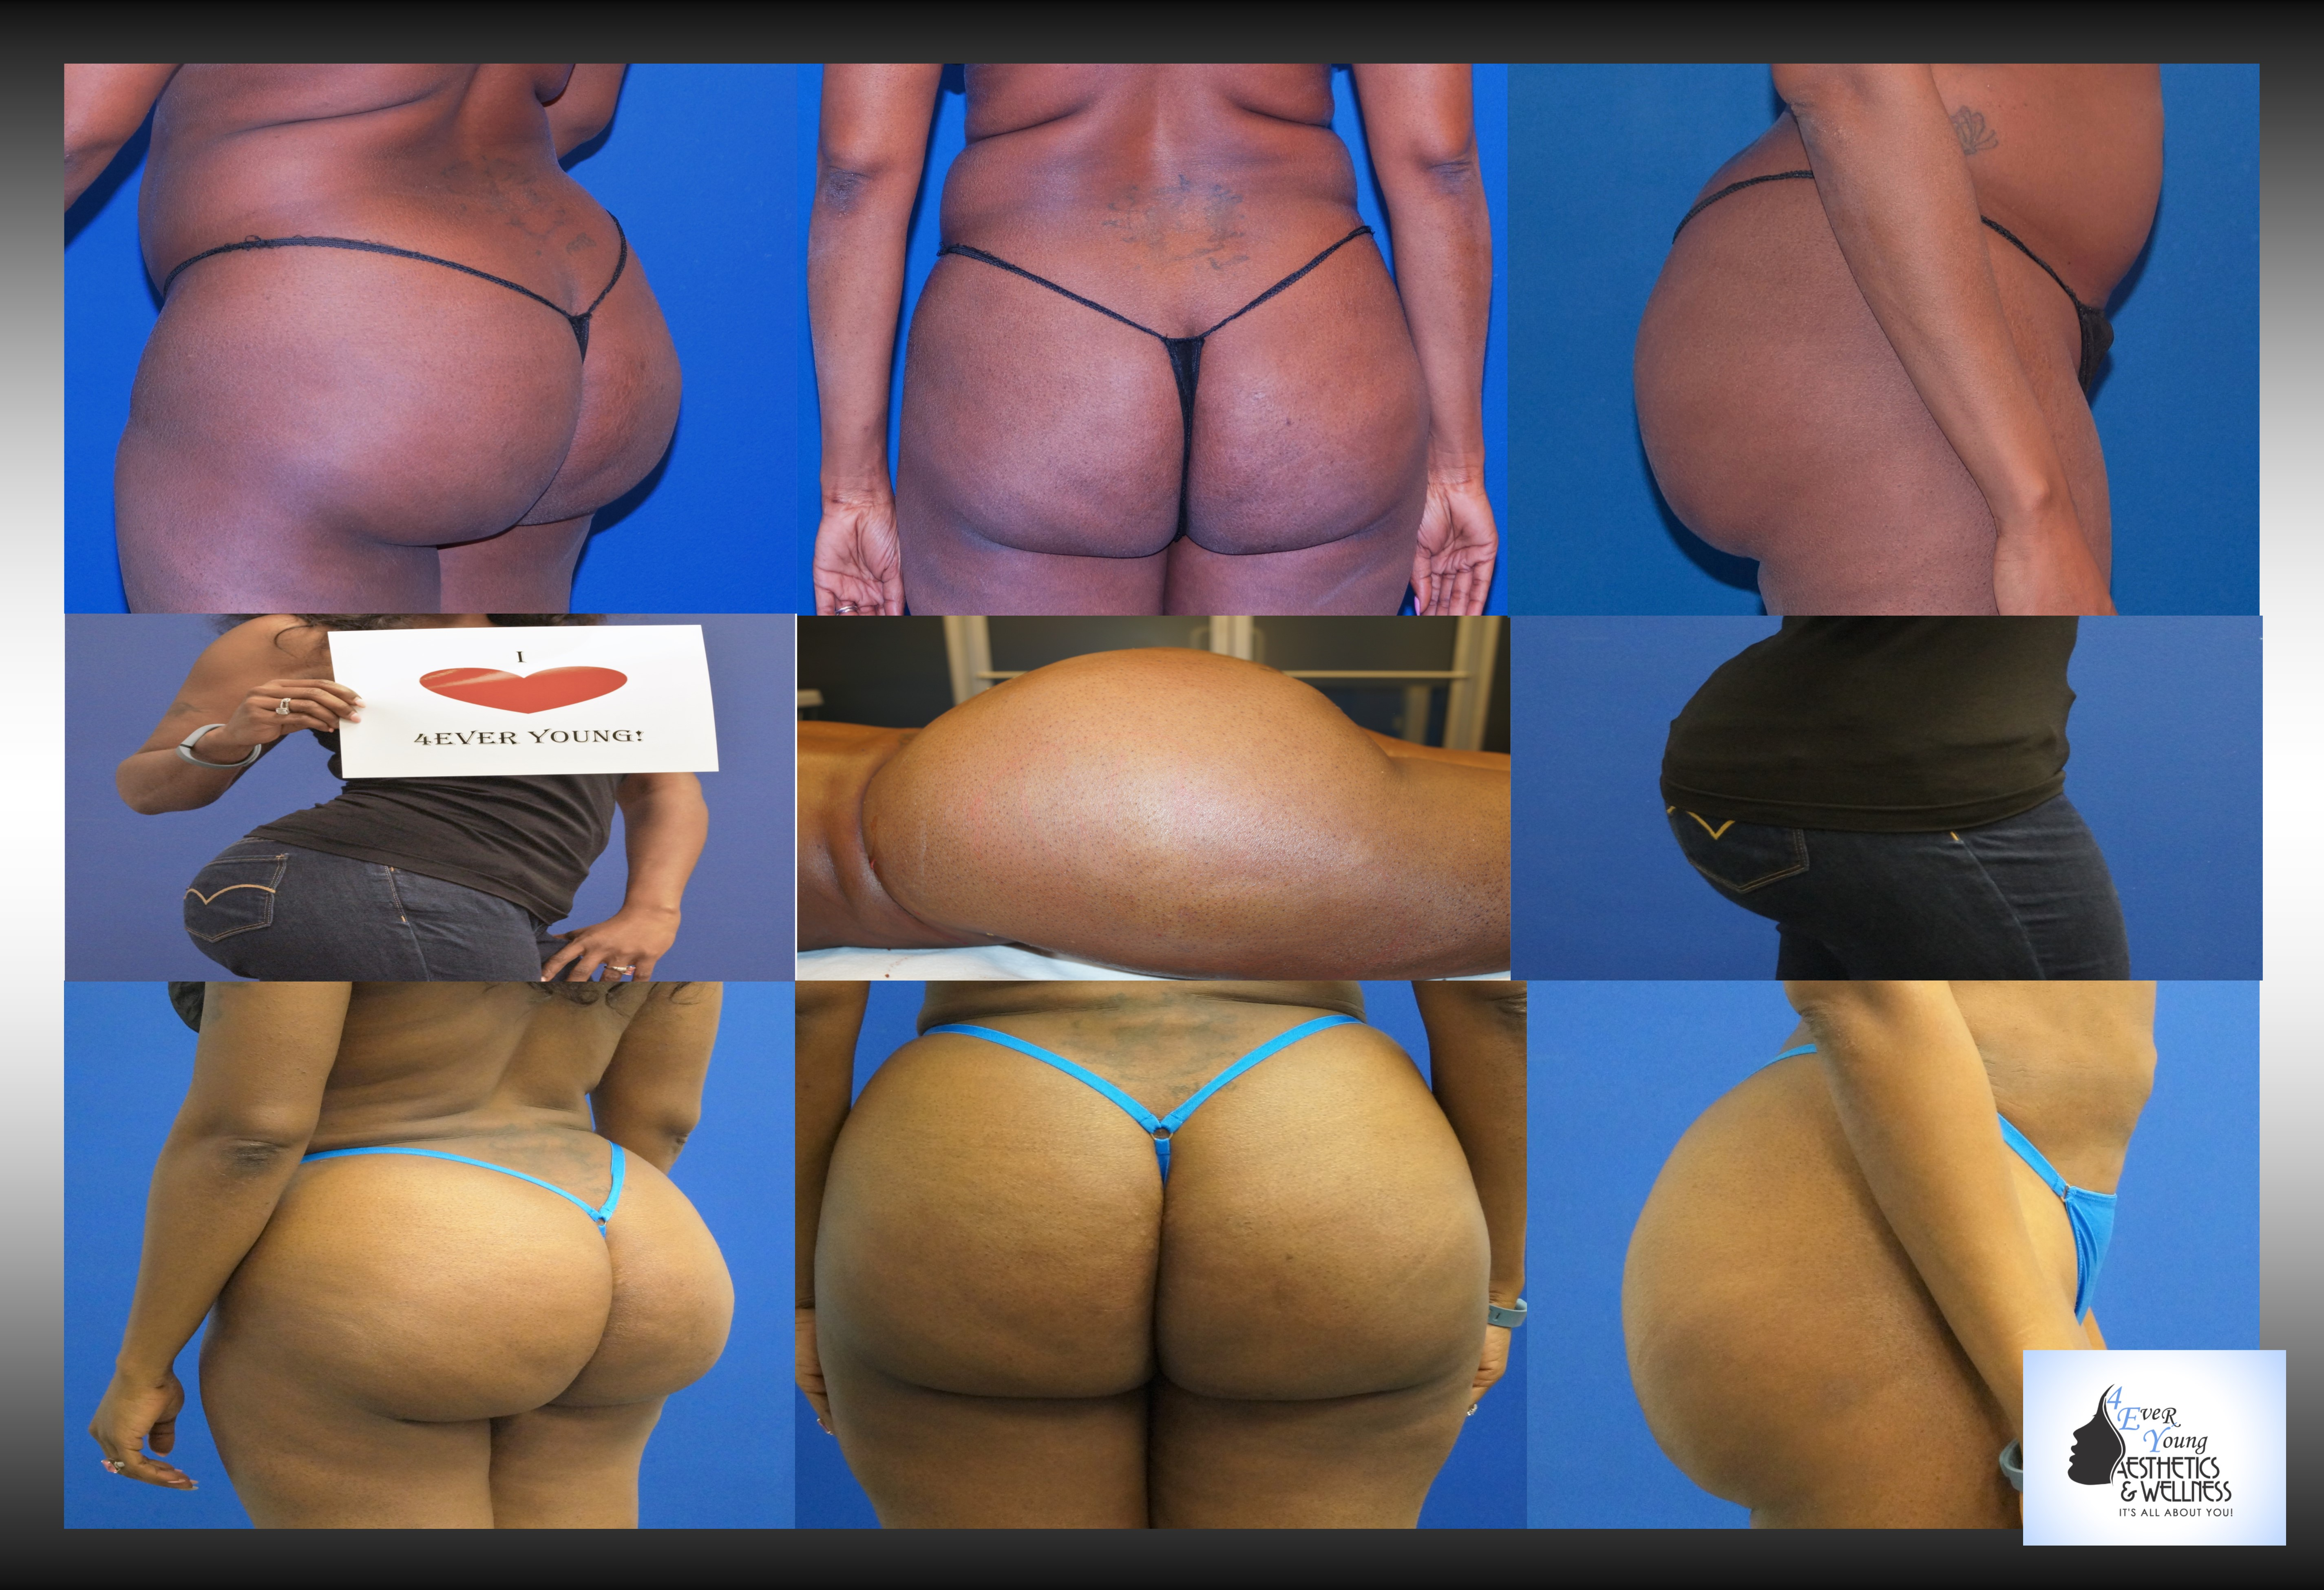 Brazilian Butt Lift after liposuction plastic surgery and fat transfer otherwise called a BBL. Fat grafting occurs after liposuction to many areas, abdominal liposuction, flank liposuction, back liposuction , thigh liposuction, arm liposuction and other areas. In Atlanta Brazilian Butt Lift results are compared between plastic surgeons and cosmetic surgeons by comparing before and after pictures.